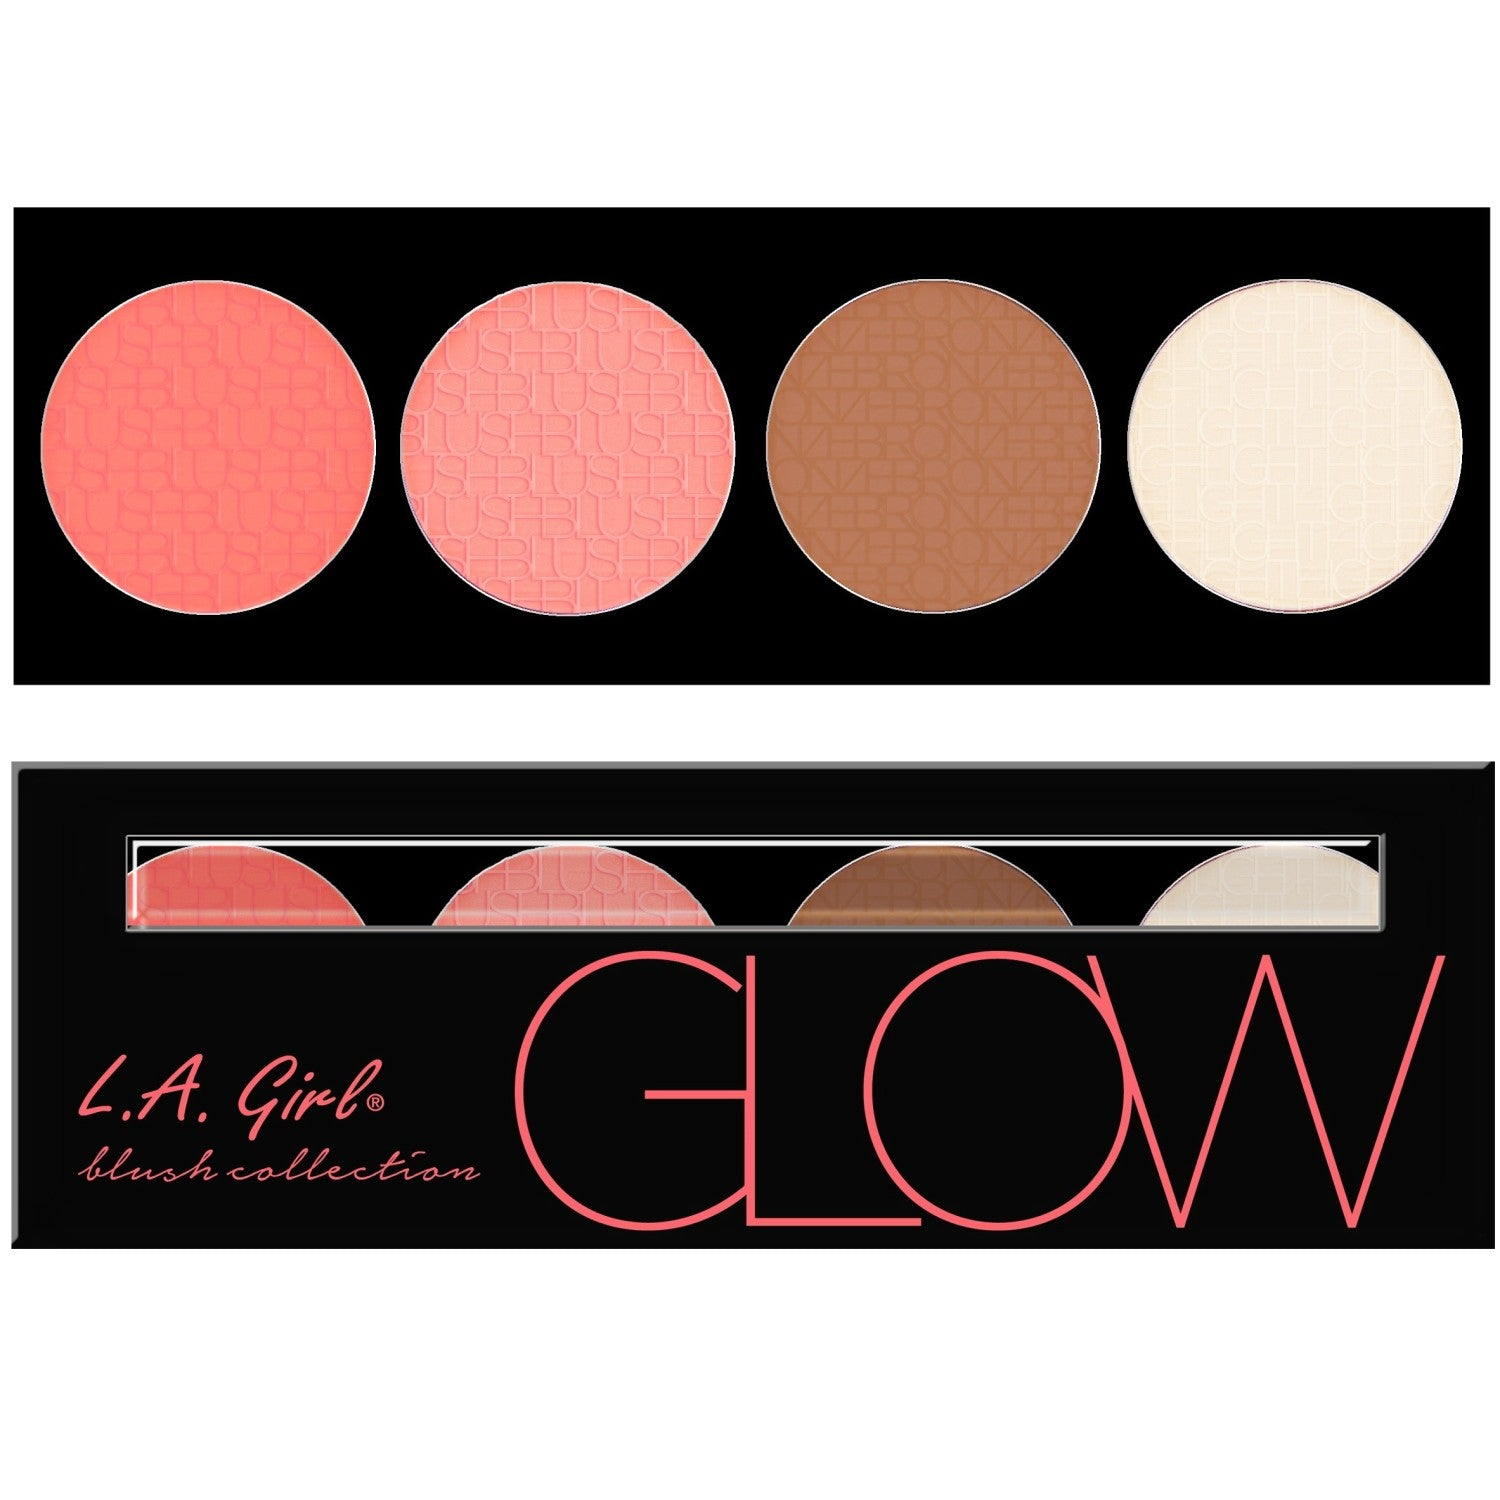 La Girl Beauty Brick Blush Collection Christine And Camille Eye Shadow